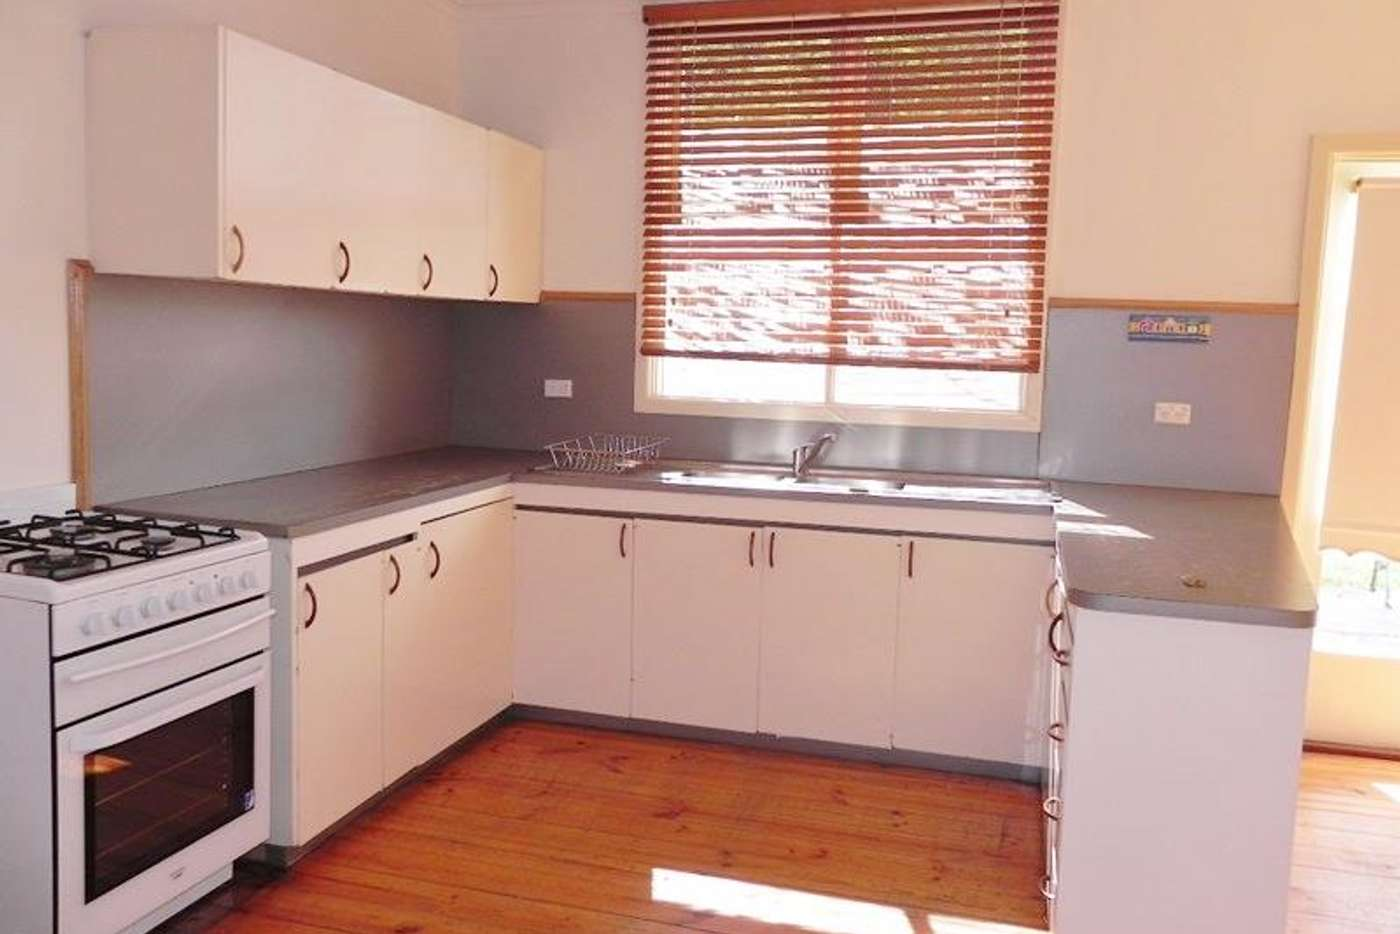 Main view of Homely house listing, 16 Grange Road, Fairfield VIC 3078